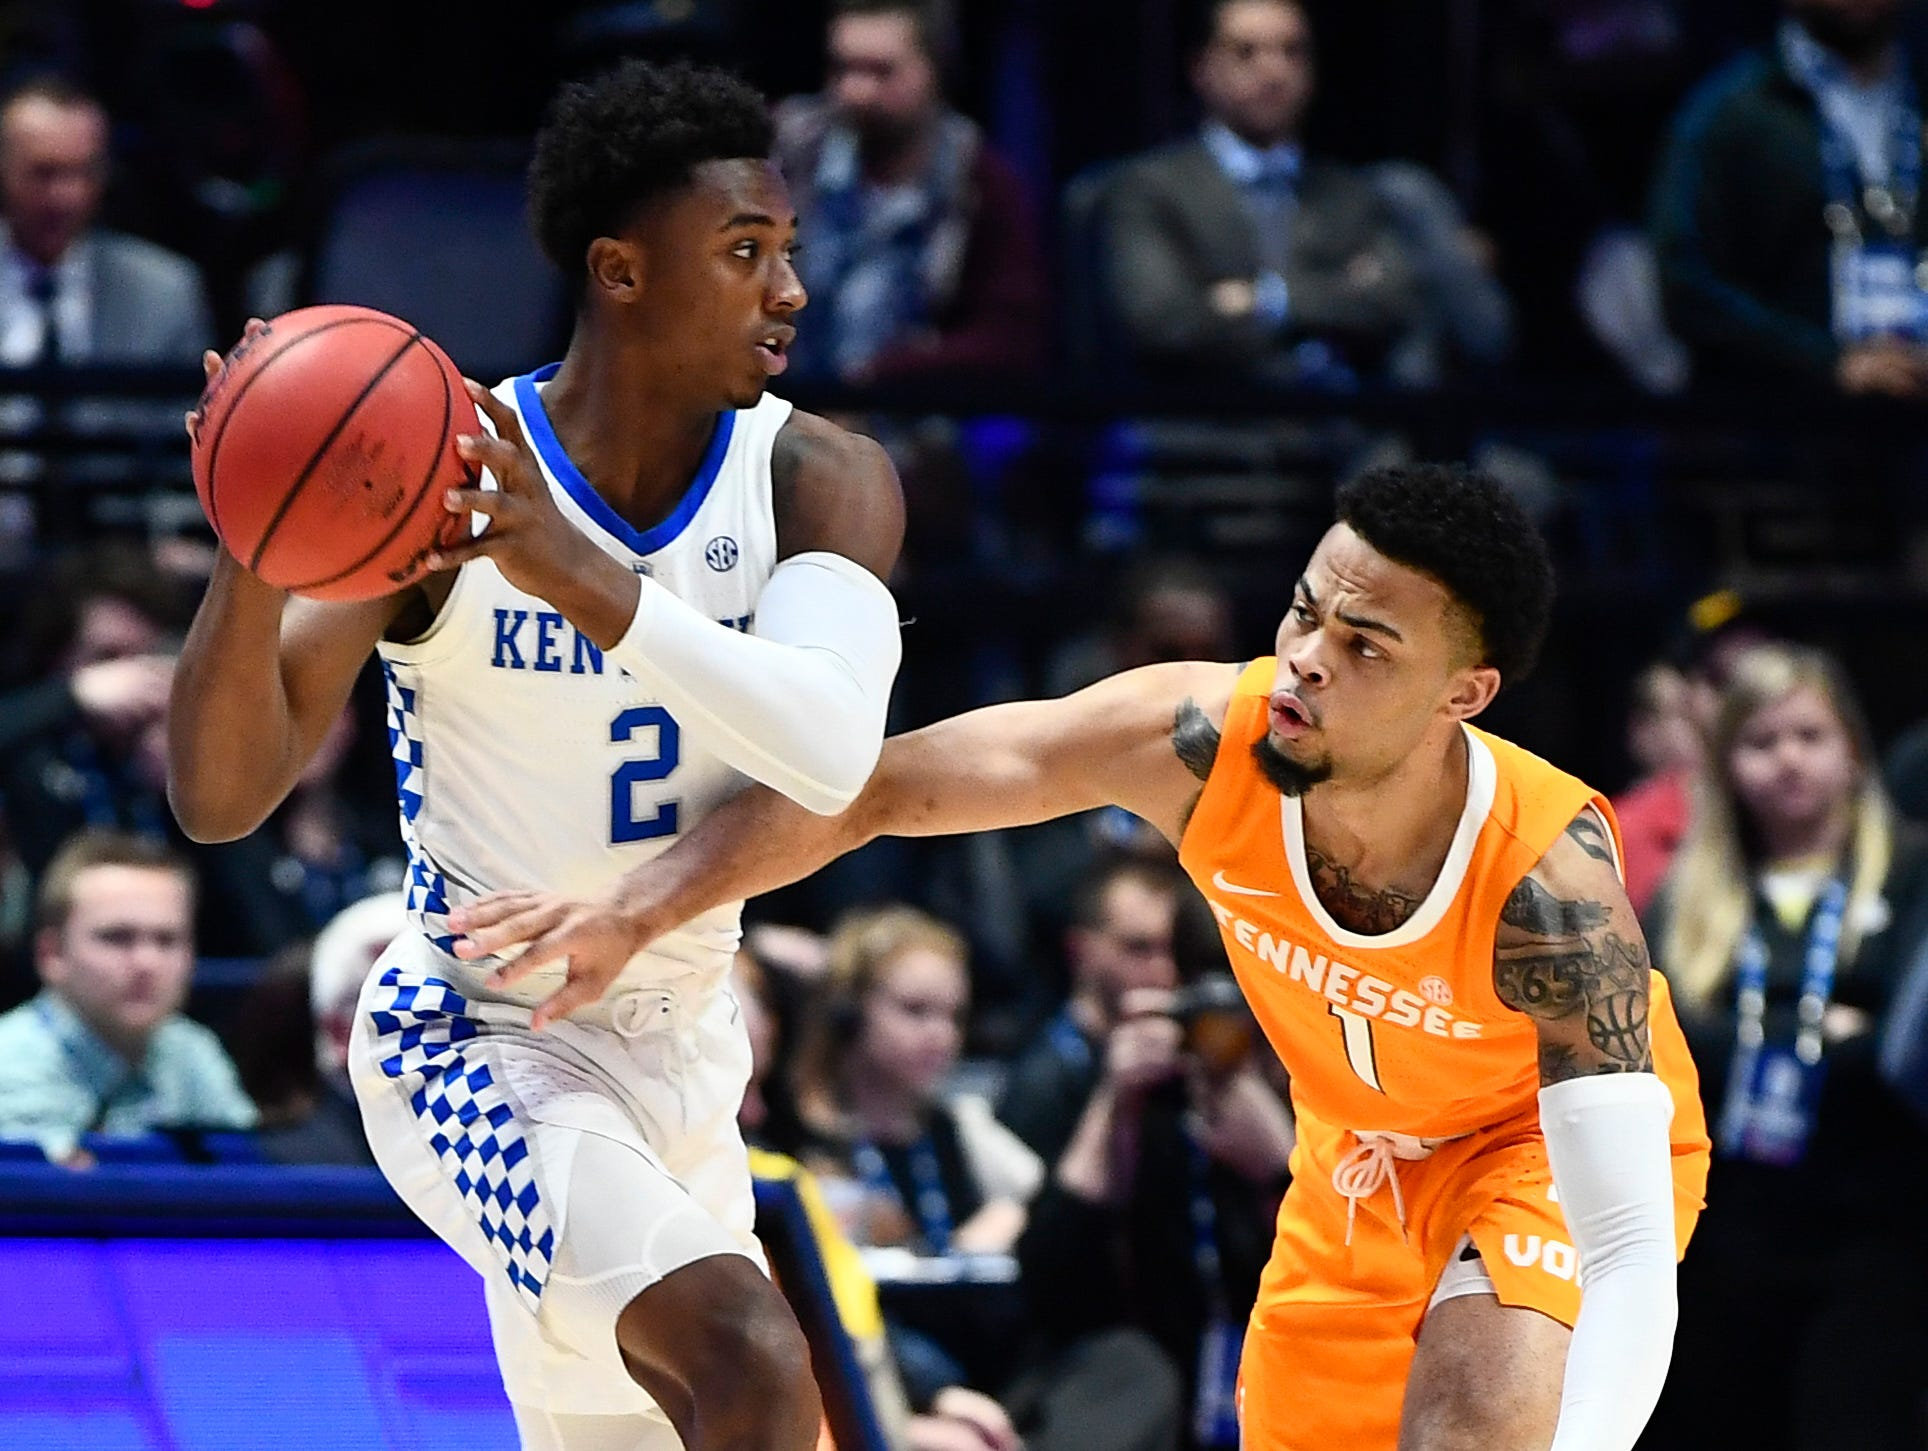 Tennessee guard Lamonte Turner (1) defends against Kentucky guard Ashton Hagans (2) during the first half of the SEC Men's Basketball Tournament semifinal game at Bridgestone Arena in Nashville, Tenn., Saturday, March 16, 2019.